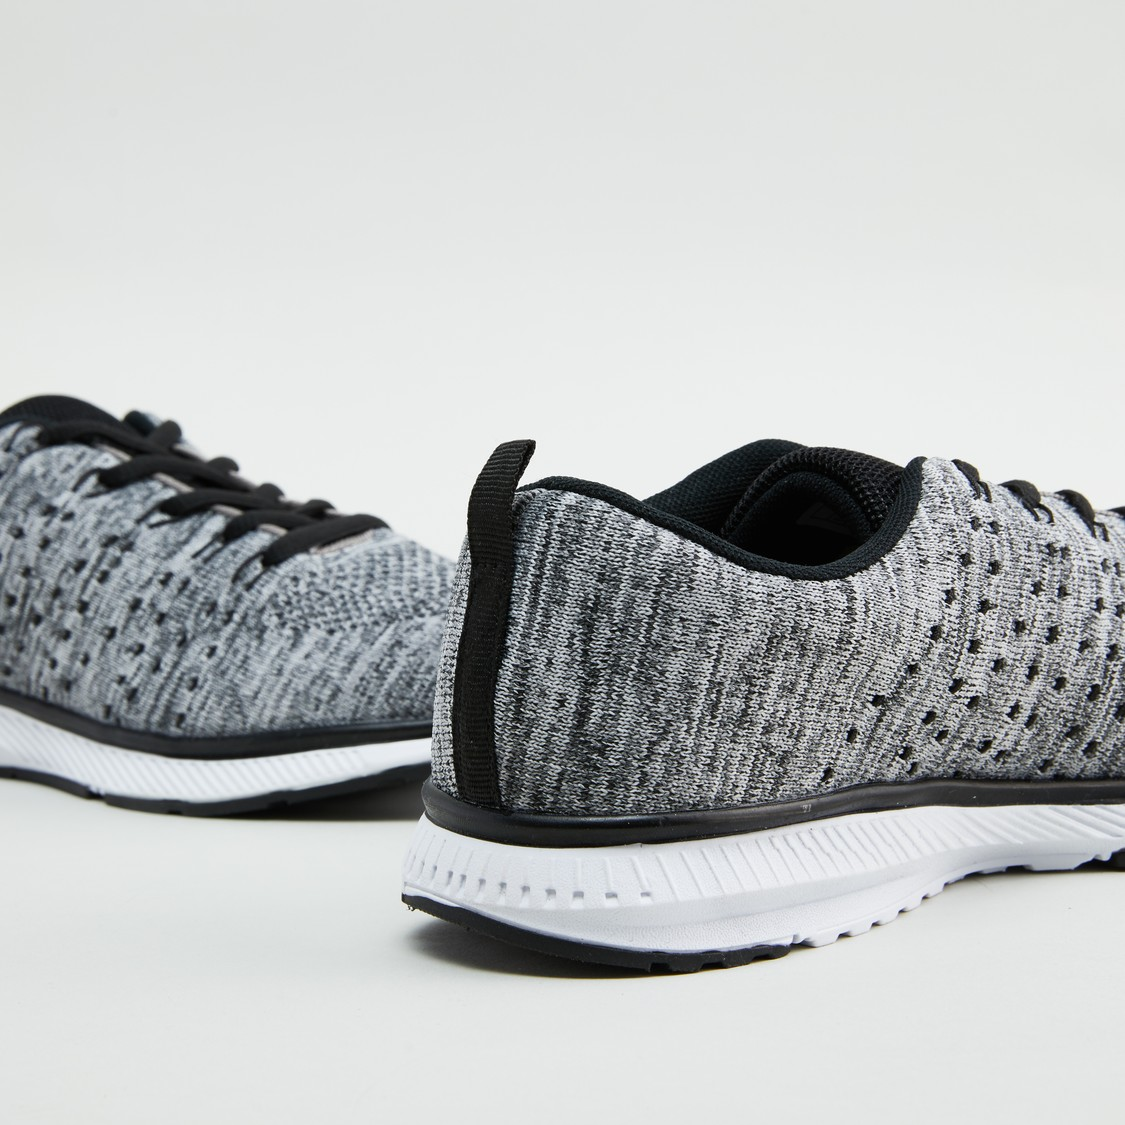 Textured Low Top Lace Up Shoes